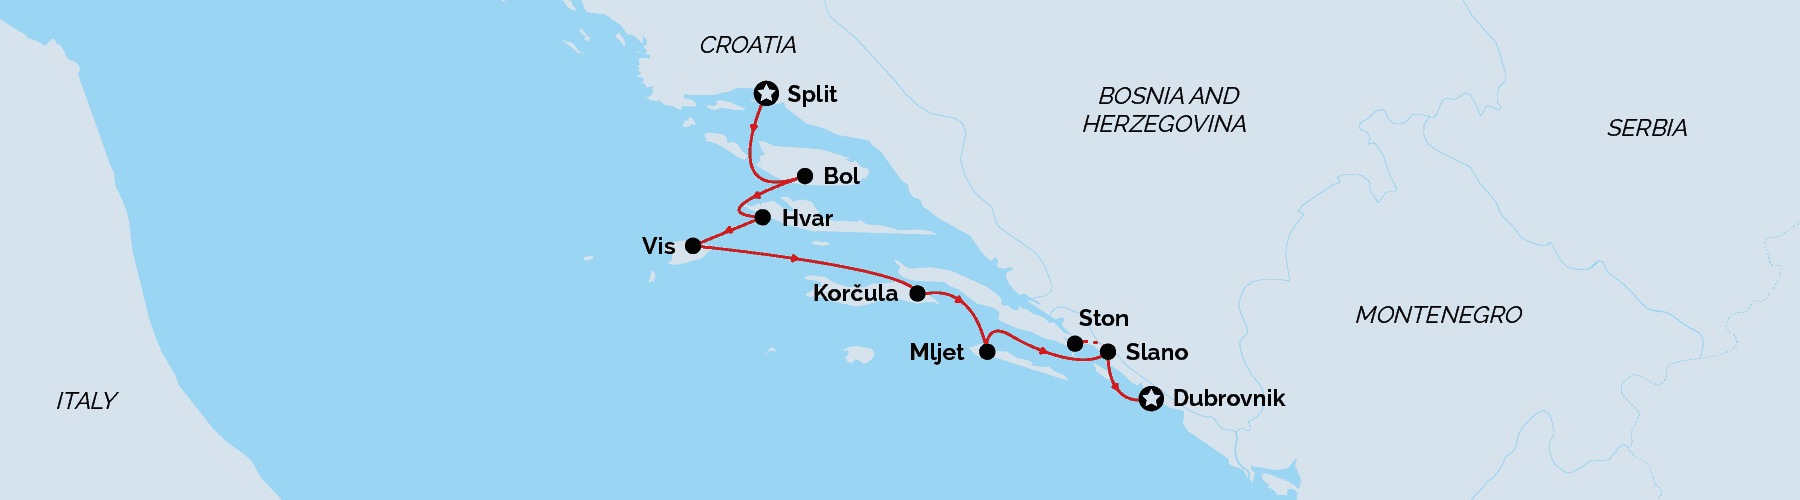 Cruise map, Split to Dubrovnik, Deluxe